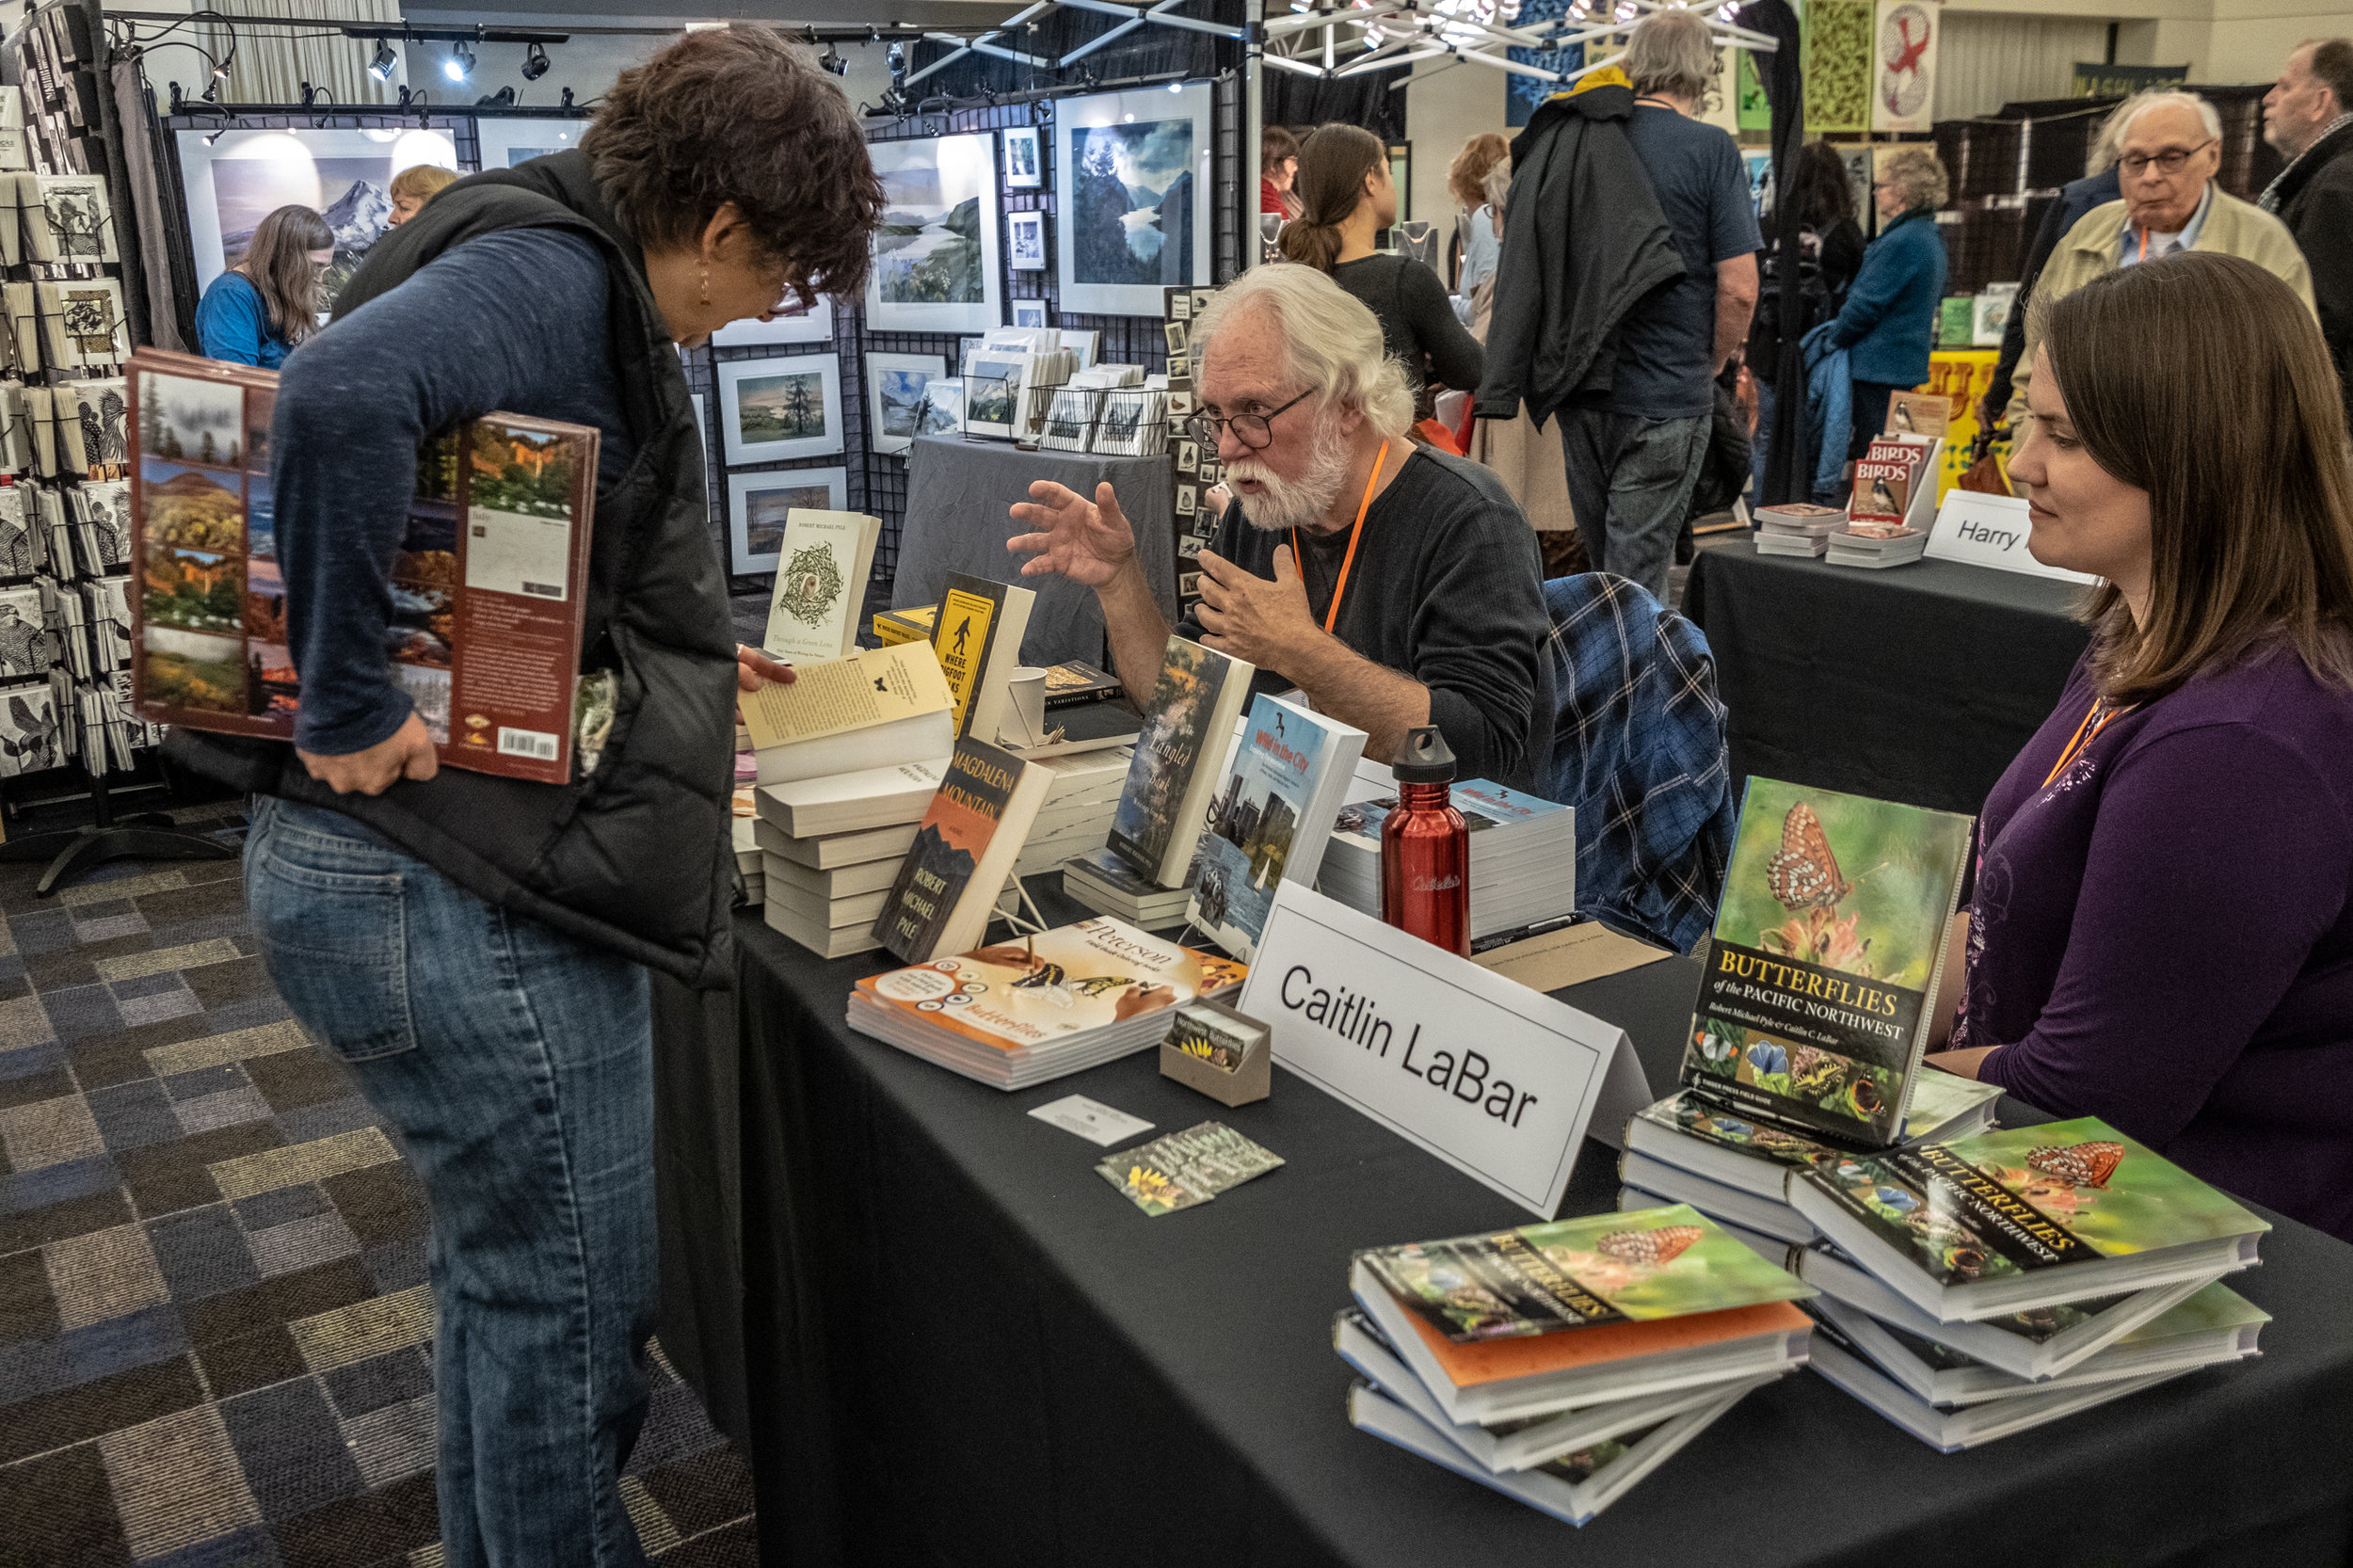 Authors - Meet Northwest writers who focus on the natural world